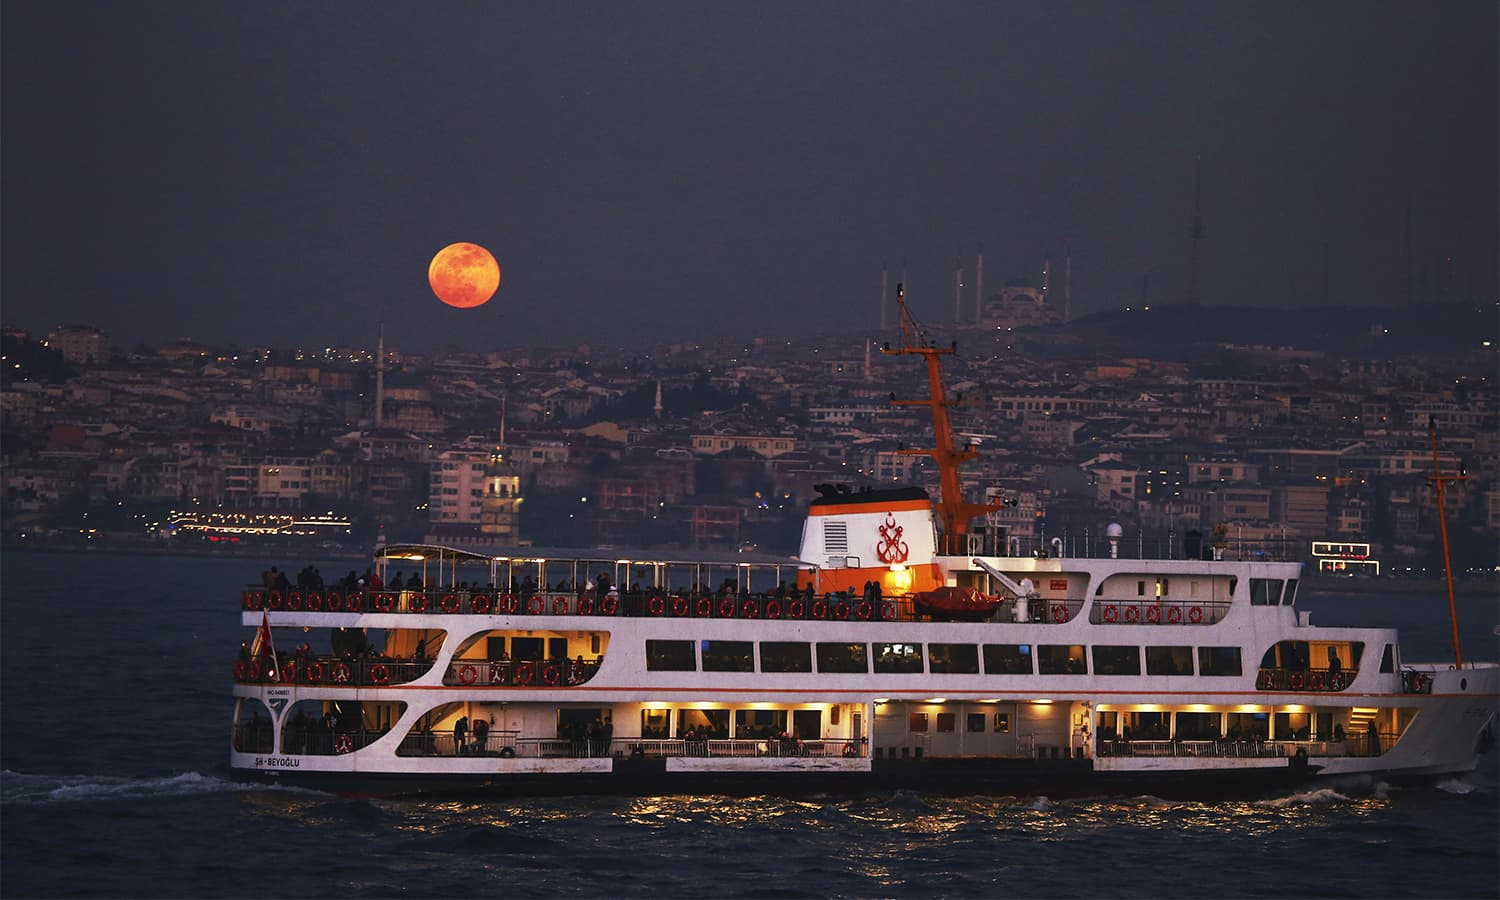 A boat sails in the Bosporus Strait separating Europe and Asia, as a supermoon rises over Istanbul on Wednesday.— AP